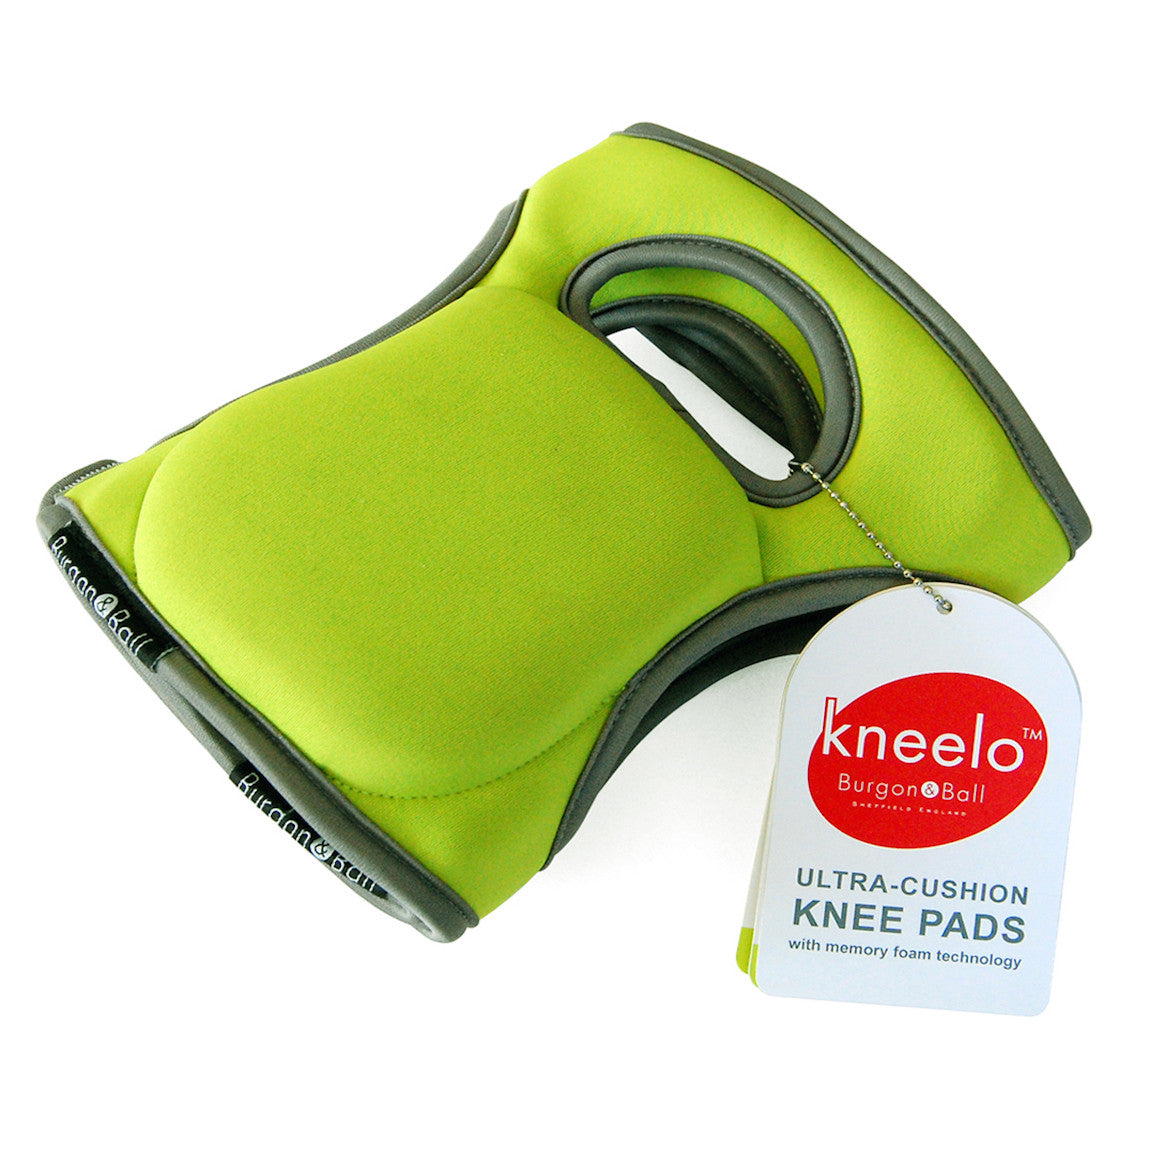 Kneelo Knee Pads - Gooseberry - The Potting Shed Garden Tools